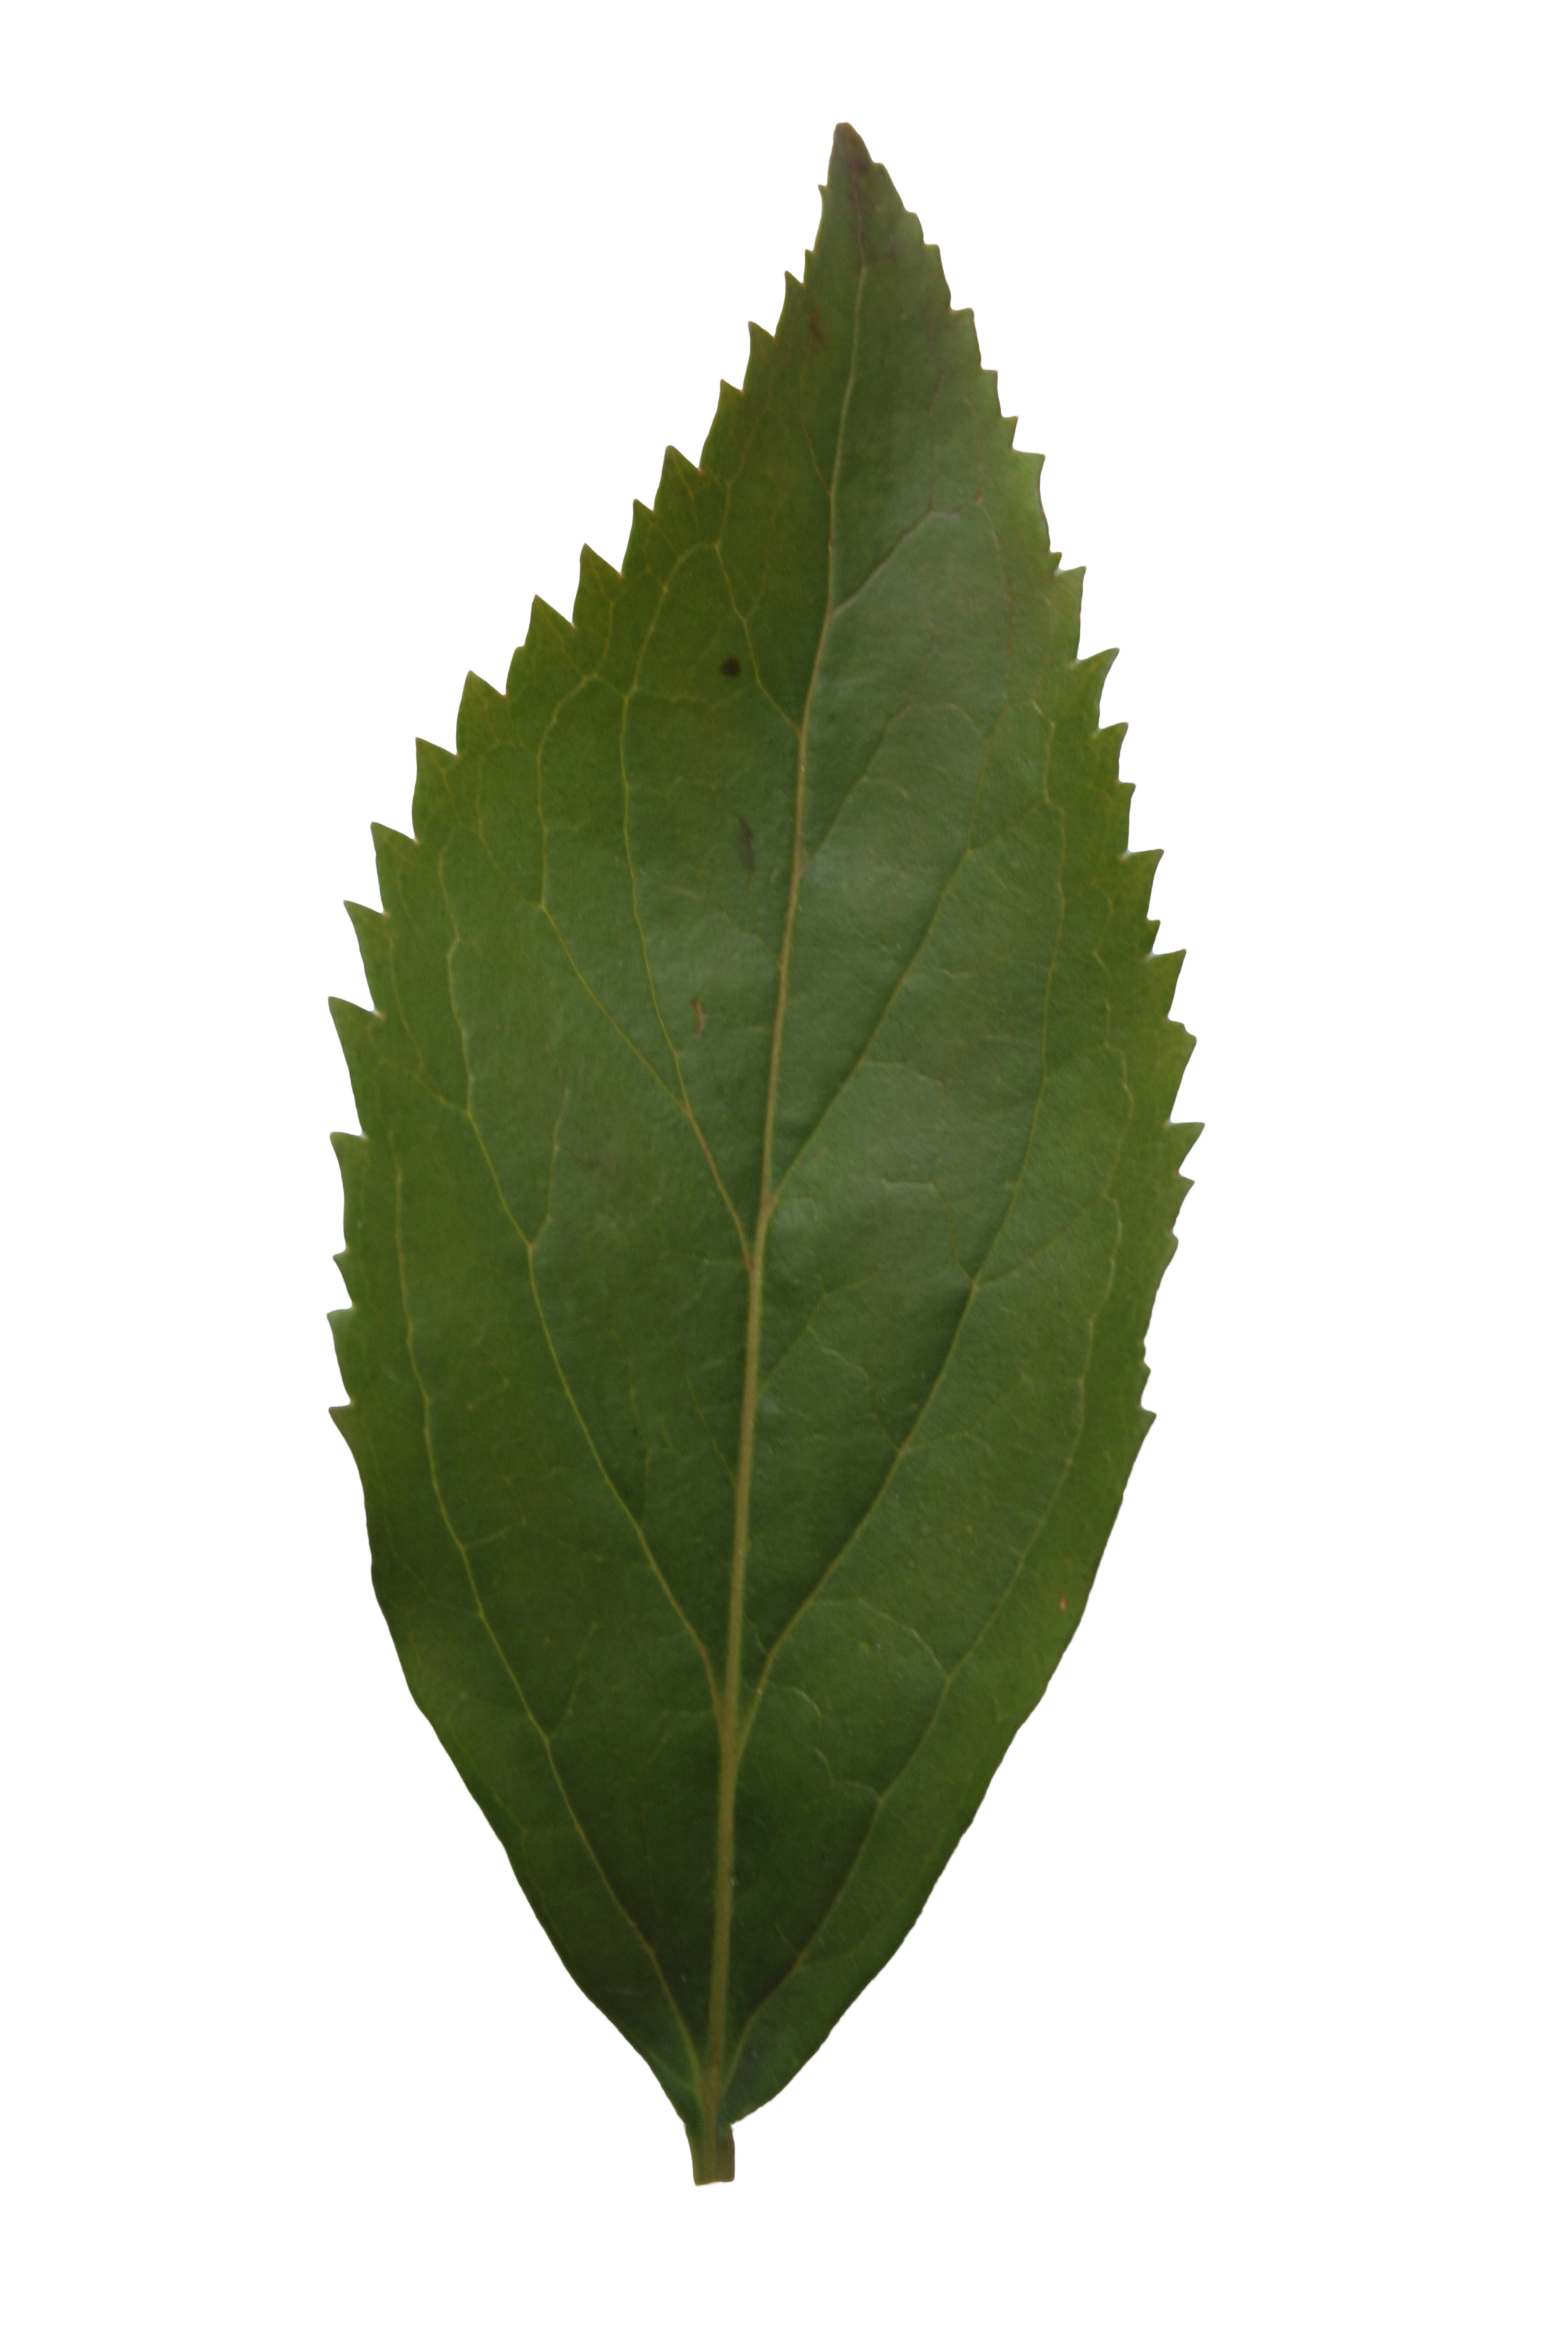 Leaf texture png. Ash free cut out